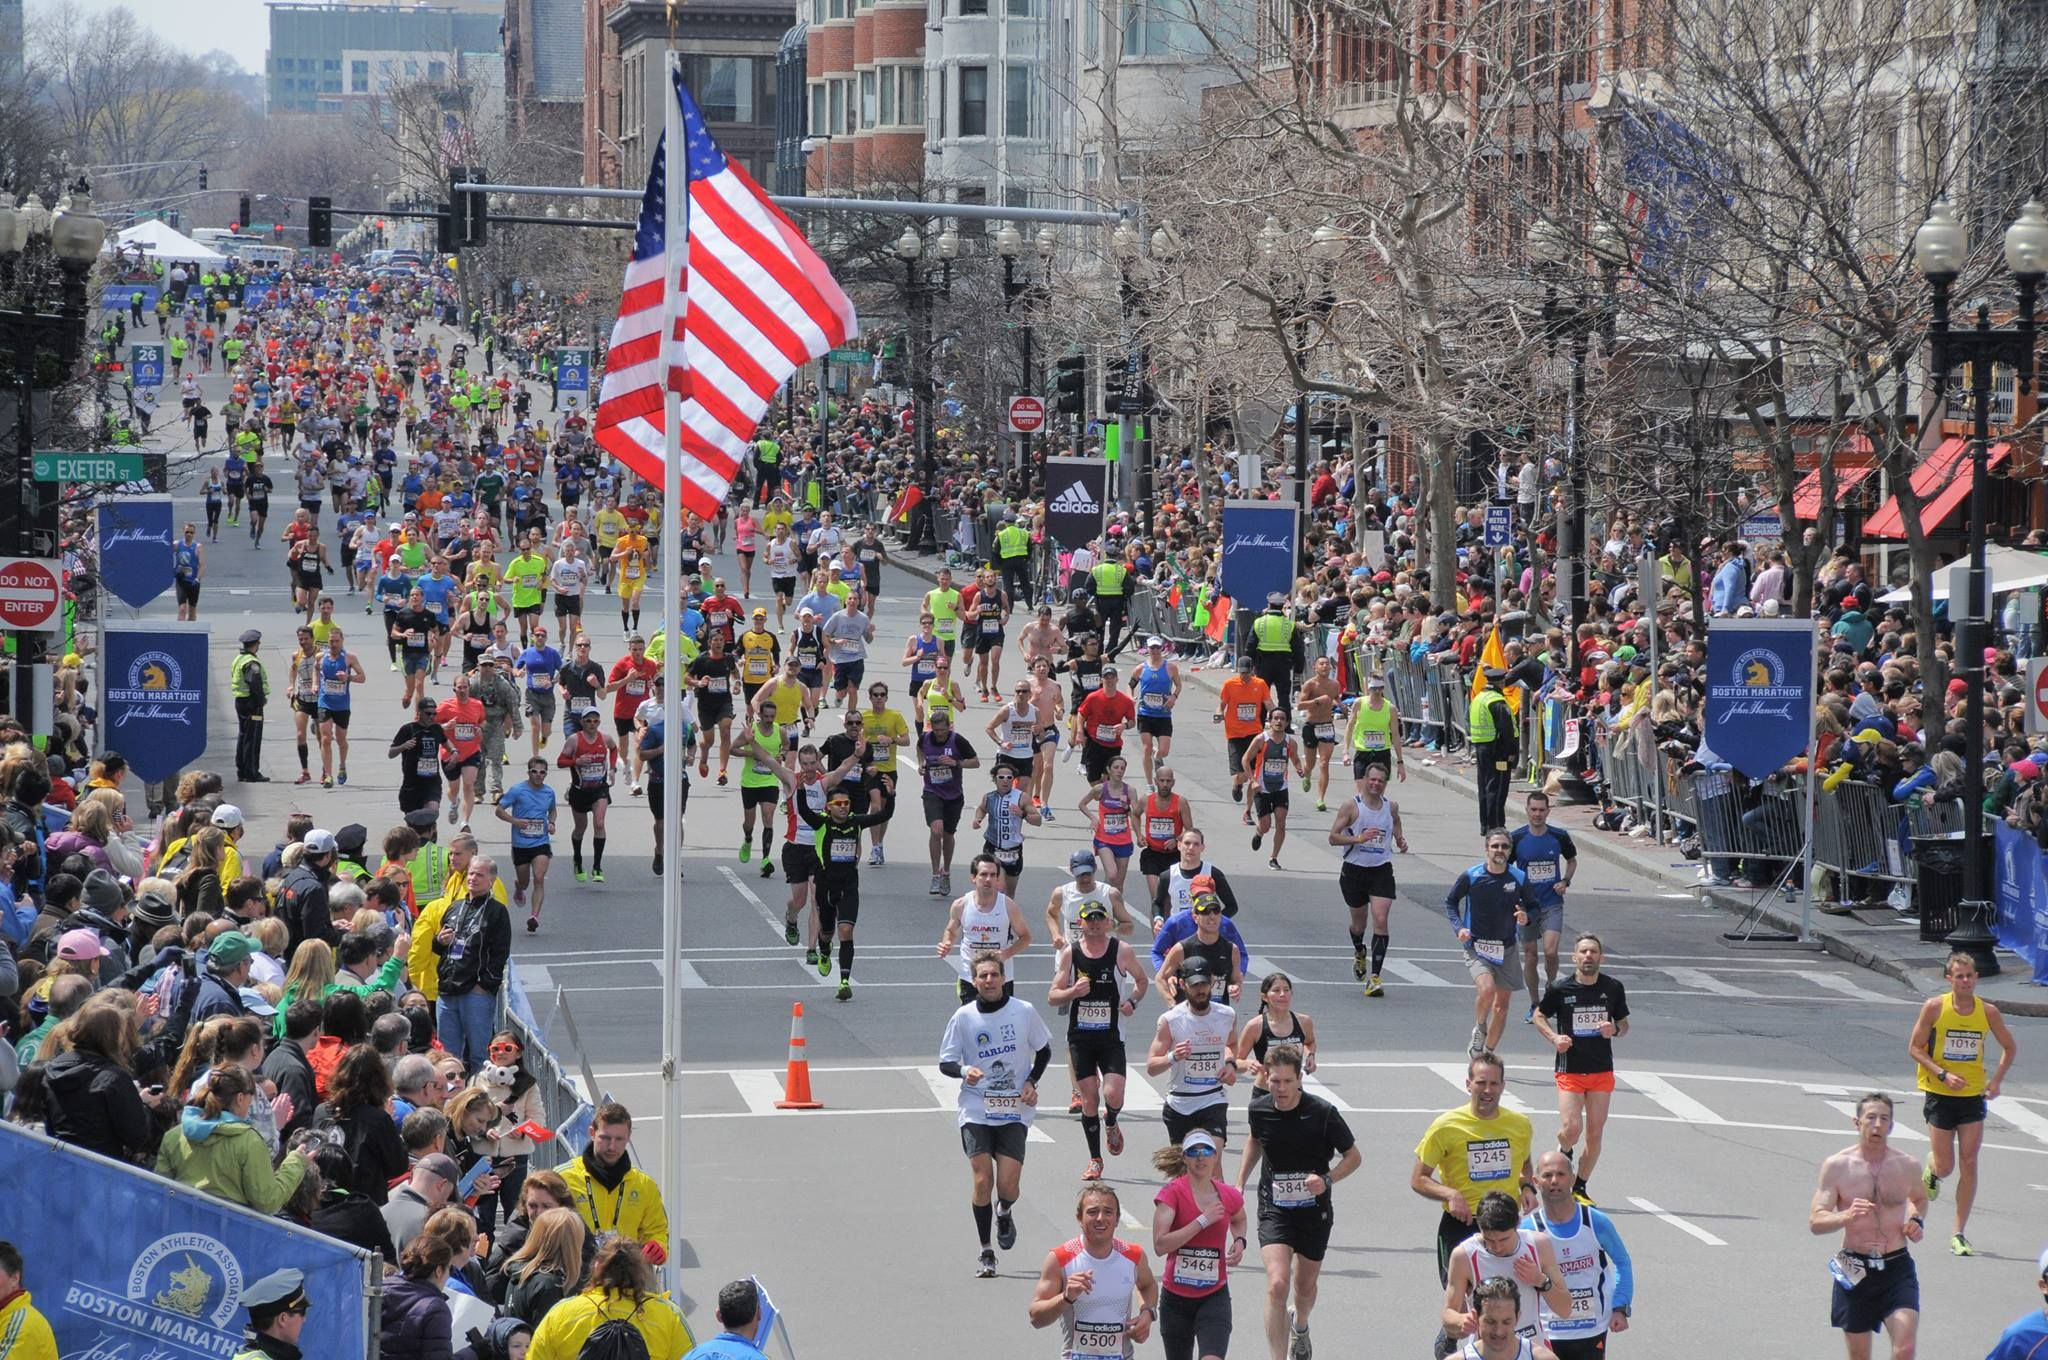 boston marathon - Google Search